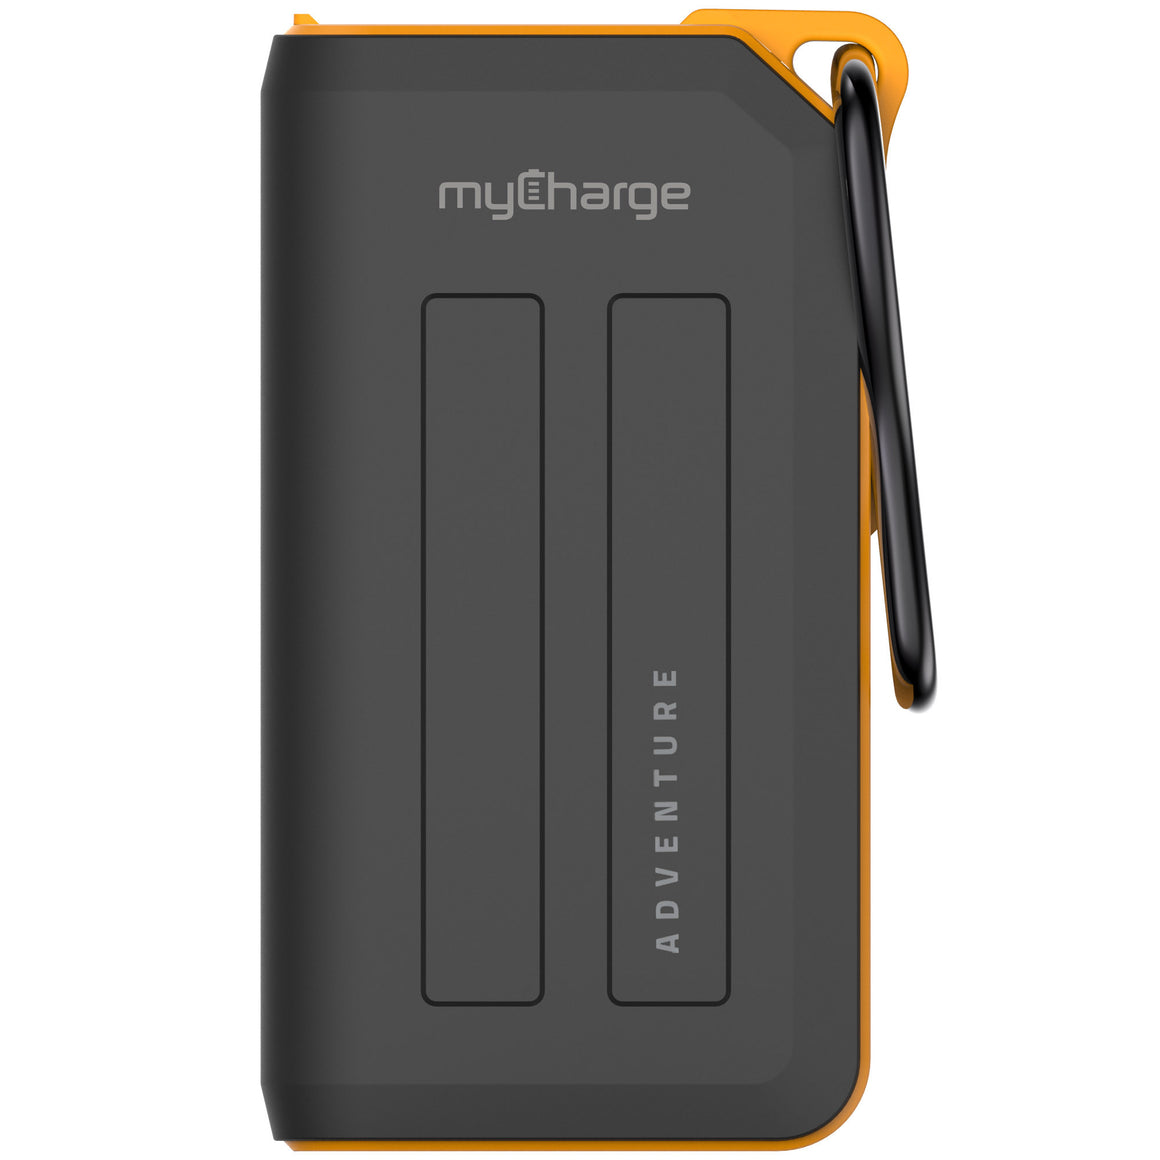 AdventurePlus Front 6700mAh Portable Charger